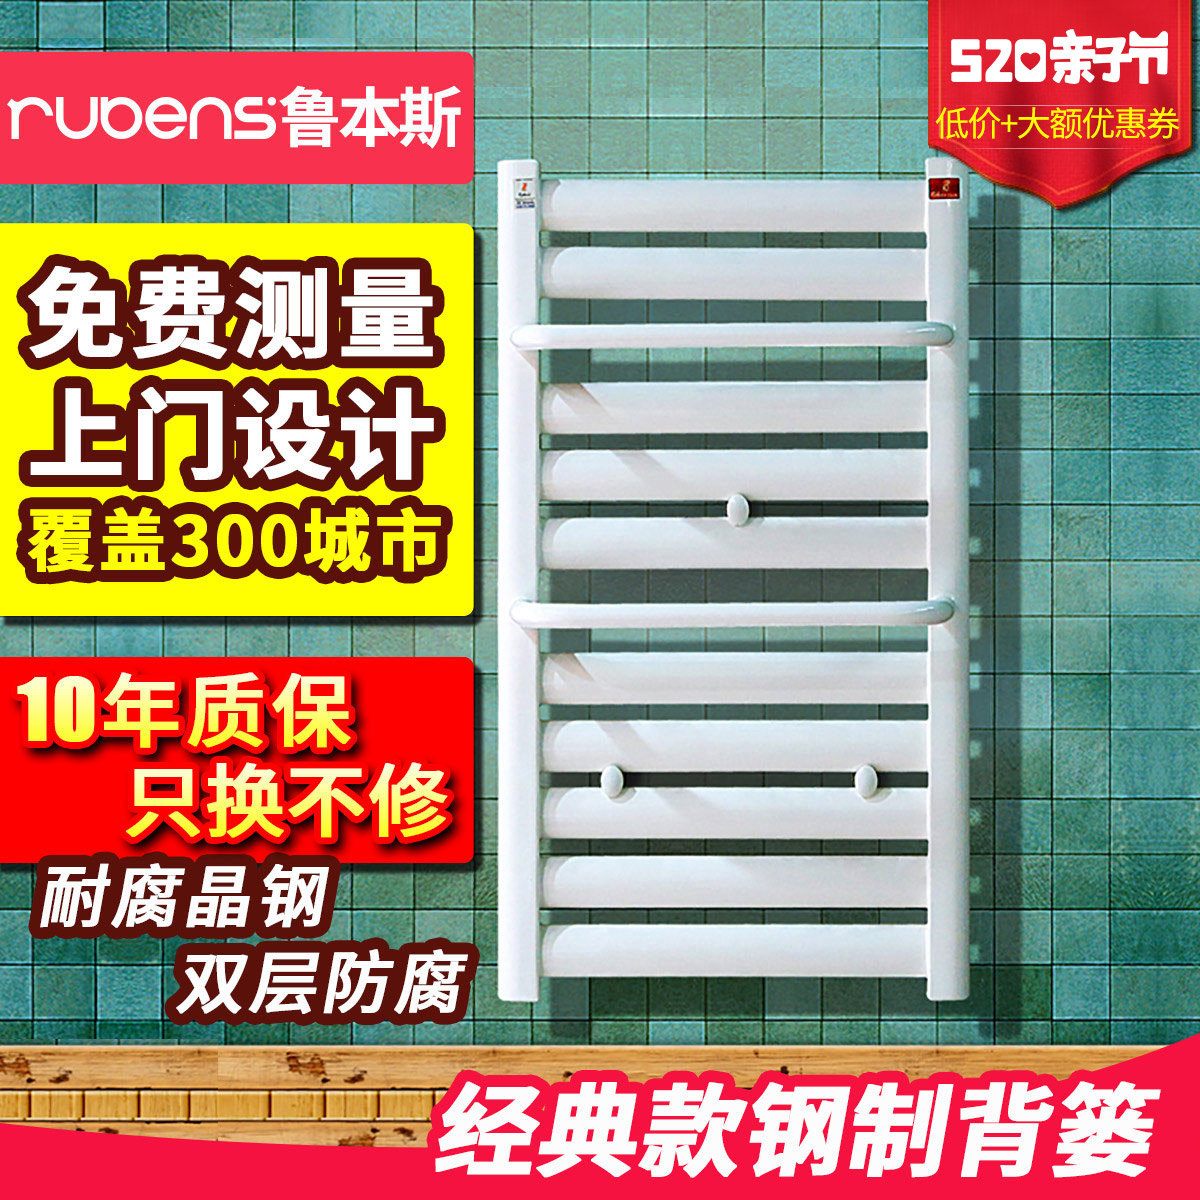 Rubens steel small back water radiator home wall-mounted custom heating bathroom drying rack heat exchanger